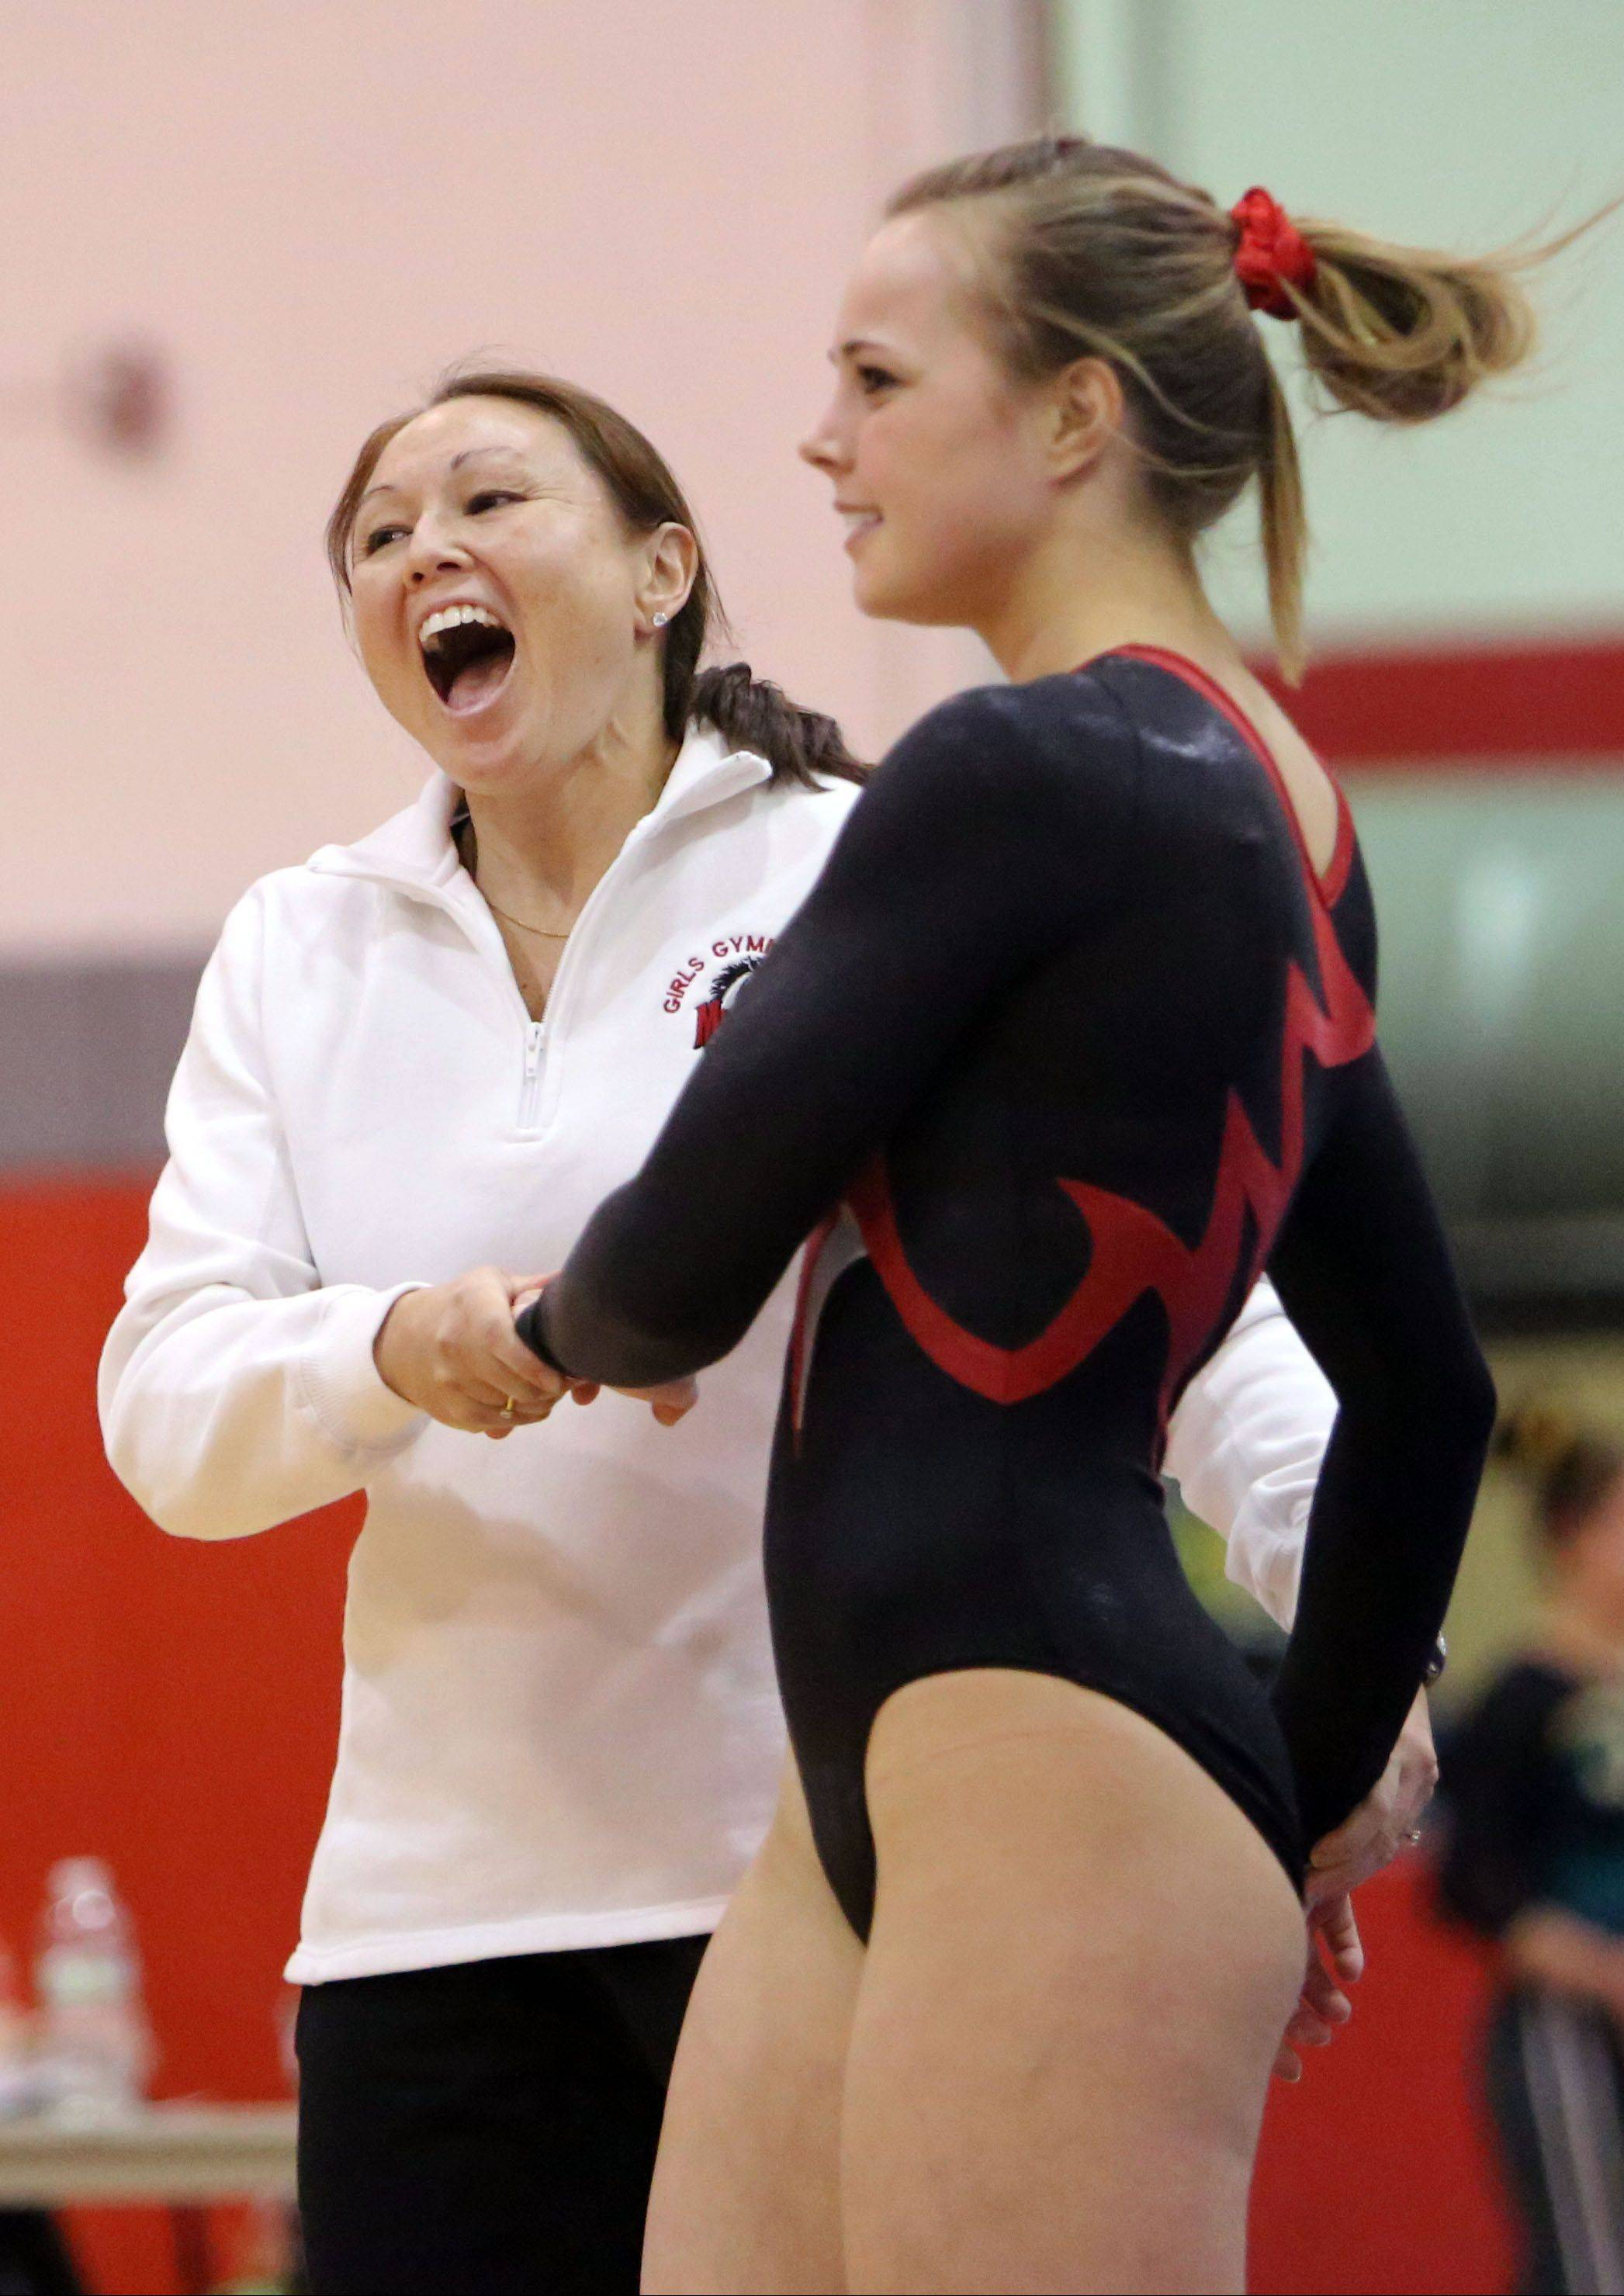 Mundelein coach Nancy Toland, left, celebrates with McKenzie Kehr after her balance beam routine during regional gymnastics action Monday at Mundelein.